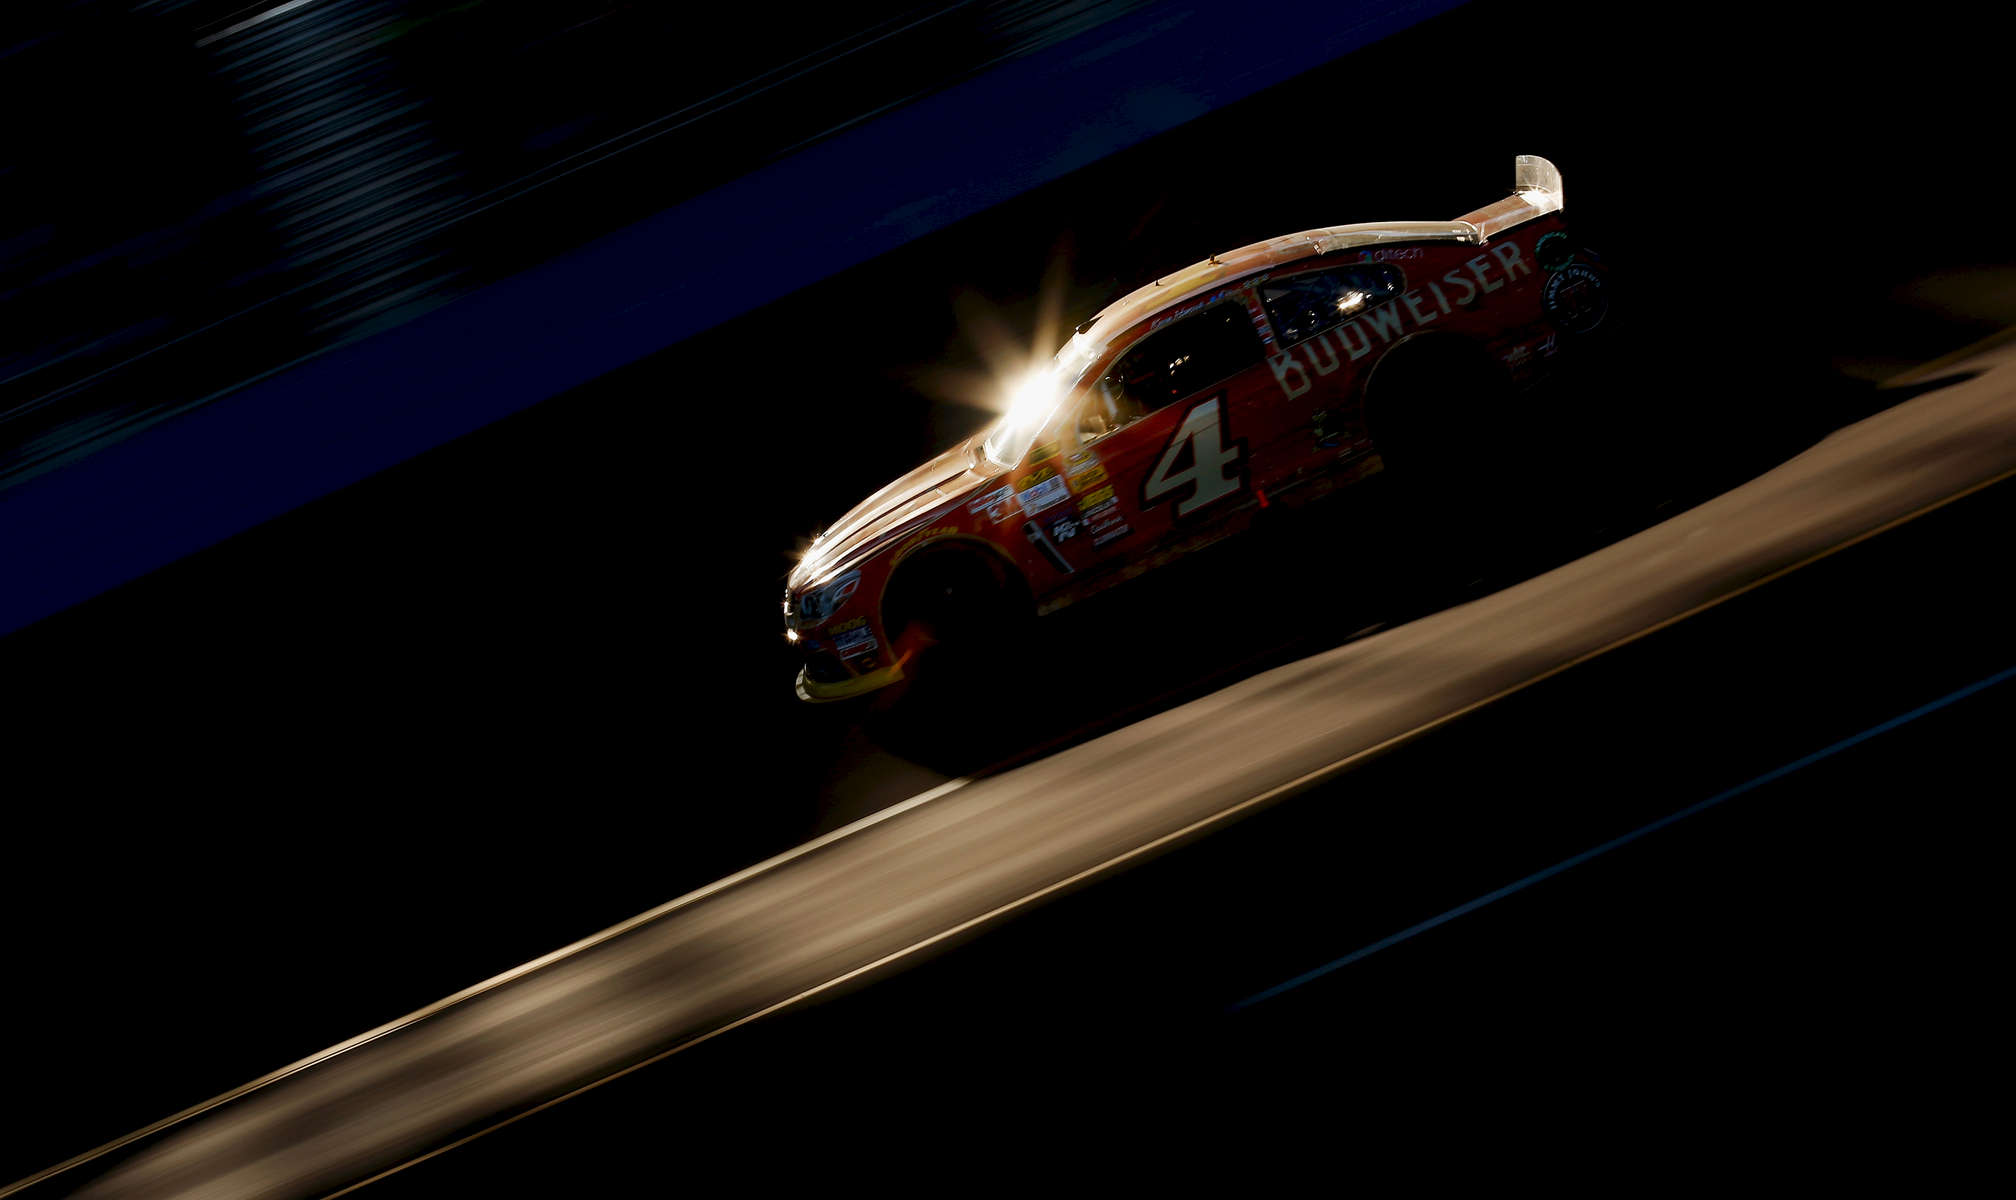 AVONDALE, AZ - NOVEMBER 09:  Kevin Harvick, driver of the #4 Budweiser Chevrolet, races during the NASCAR Sprint Cup Series Quicken Loans Race for Heroes 500 at Phoenix International Raceway on November 9, 2014 in Avondale, Arizona.  (Photo by Tom Pennington/Getty Images)